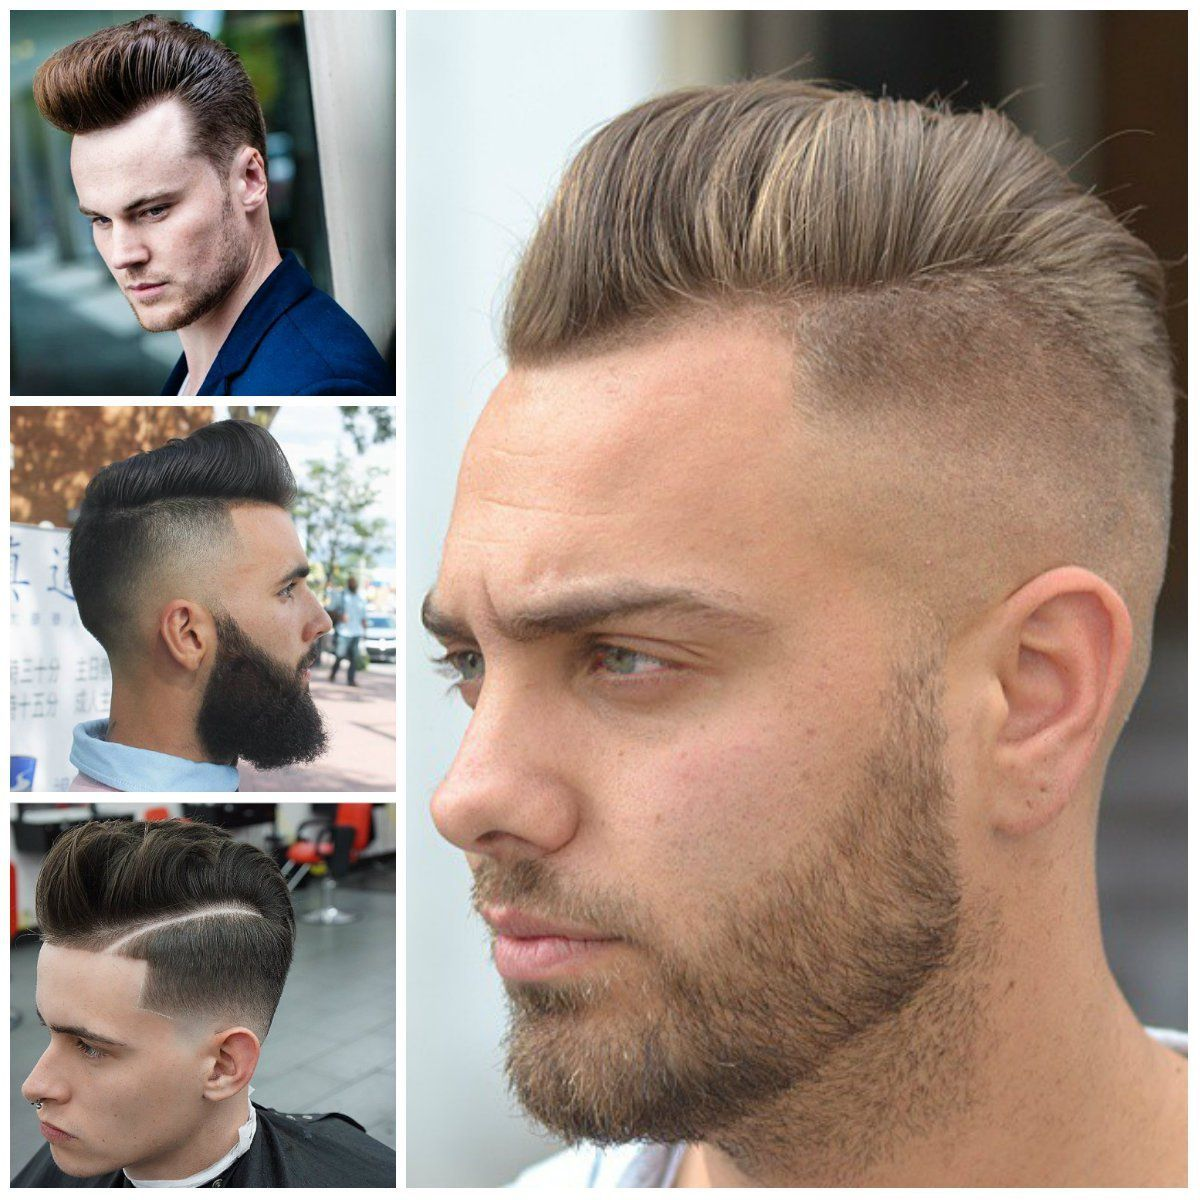 2019 pompadour hairstyles for men, #hairstyles #pompadour